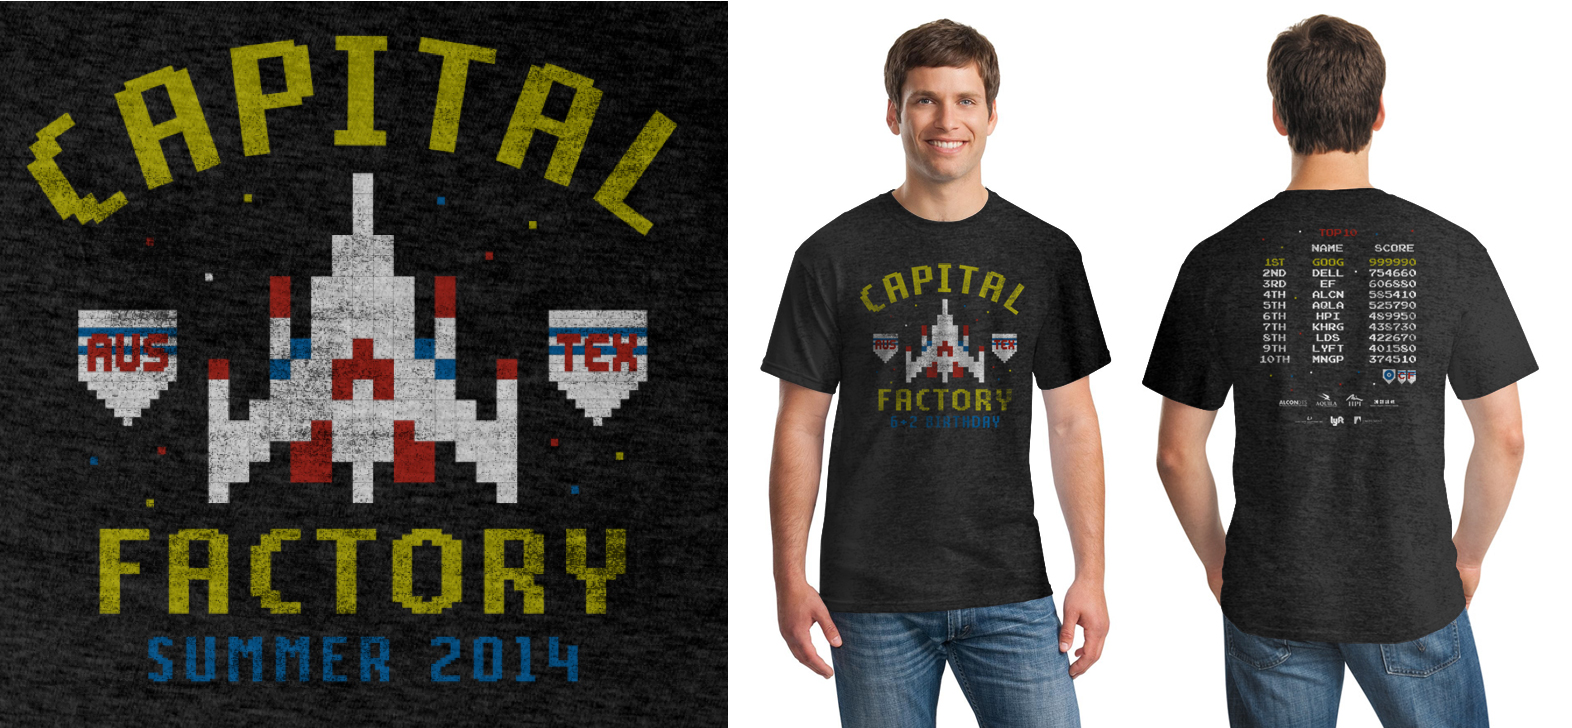 """We had an arcade themed party and riffed on my favorite game — Galaga. We were able to make the big list of sponsors look cool by integrating it into the """"high score list"""" on the back of the shirt."""